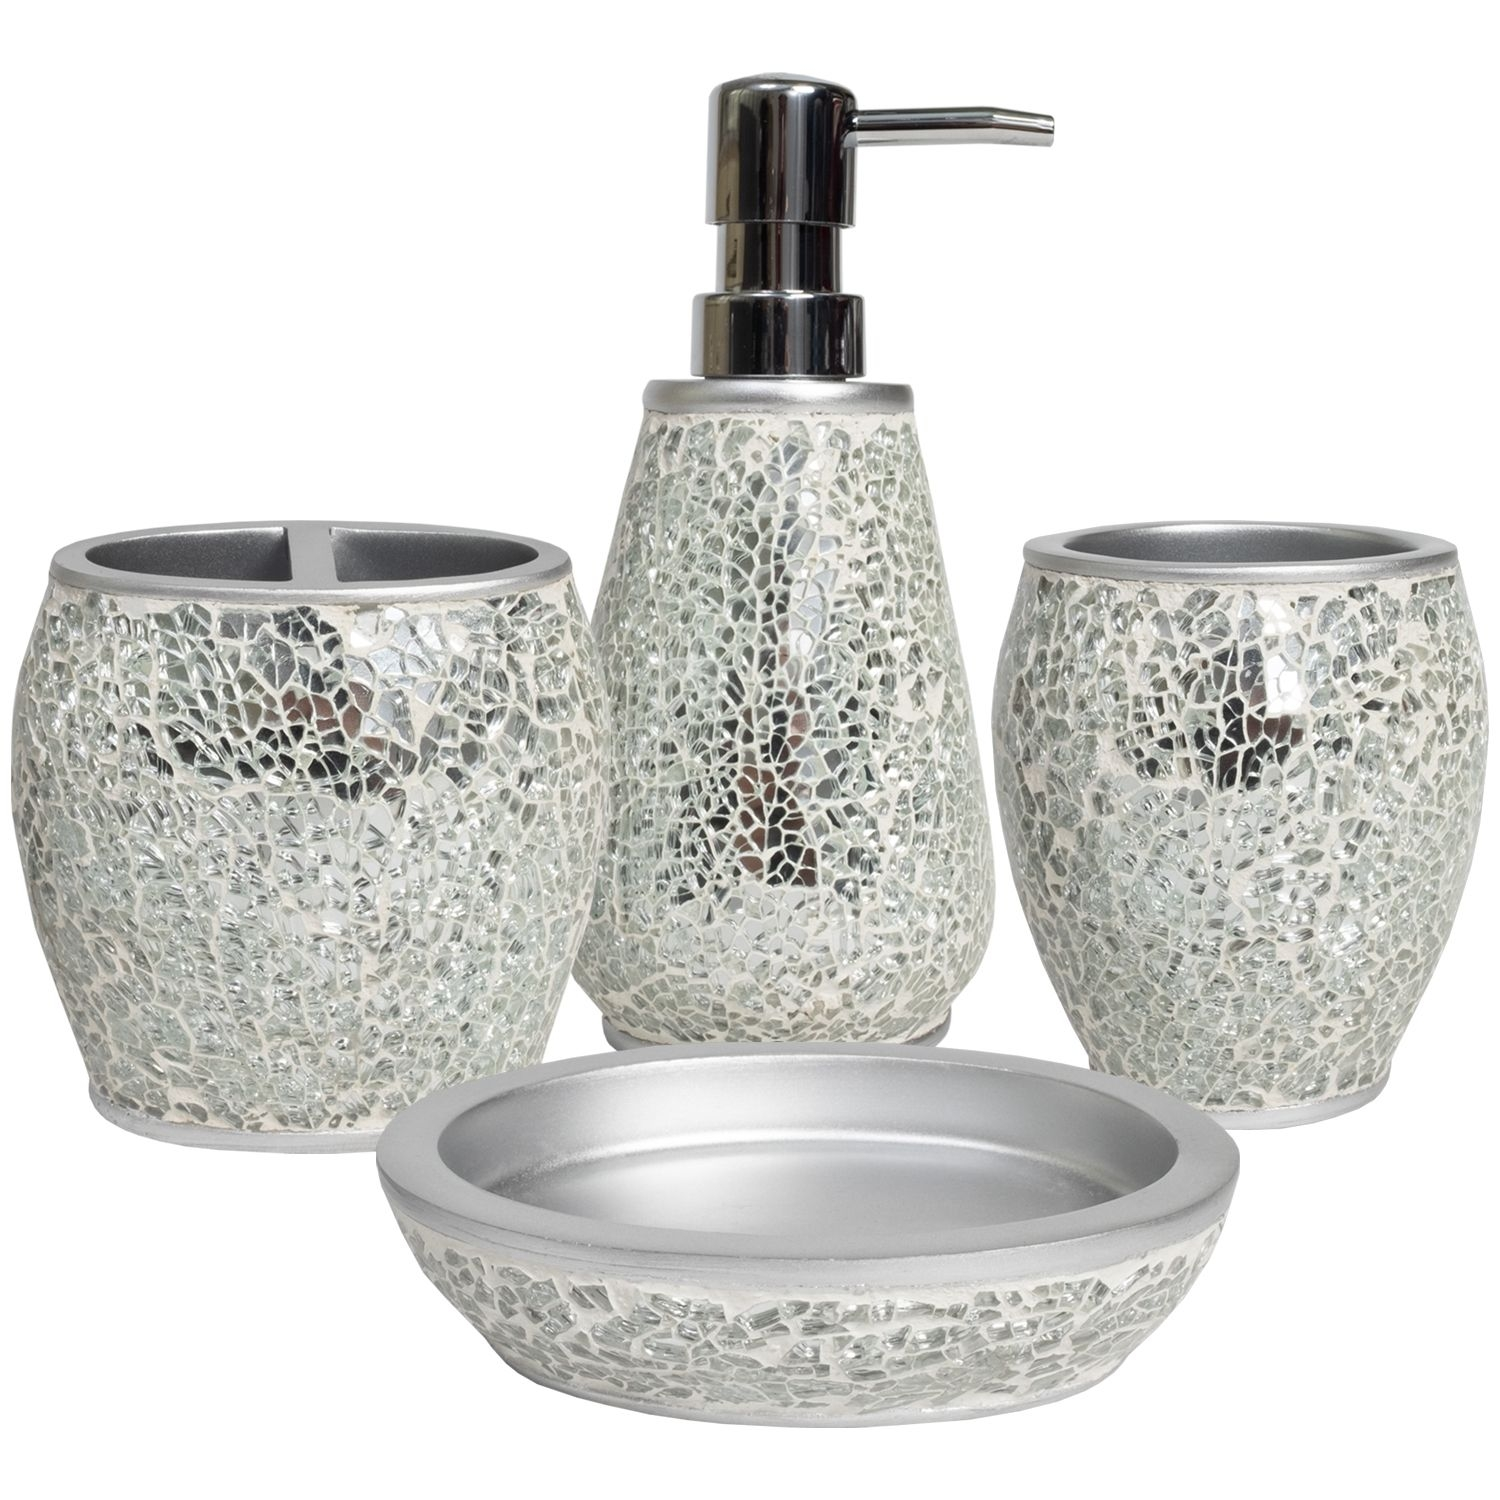 Glamour Poly Resin Bath Accessory Collection 4 Piece Bathroom Set  Walmart  Walmart